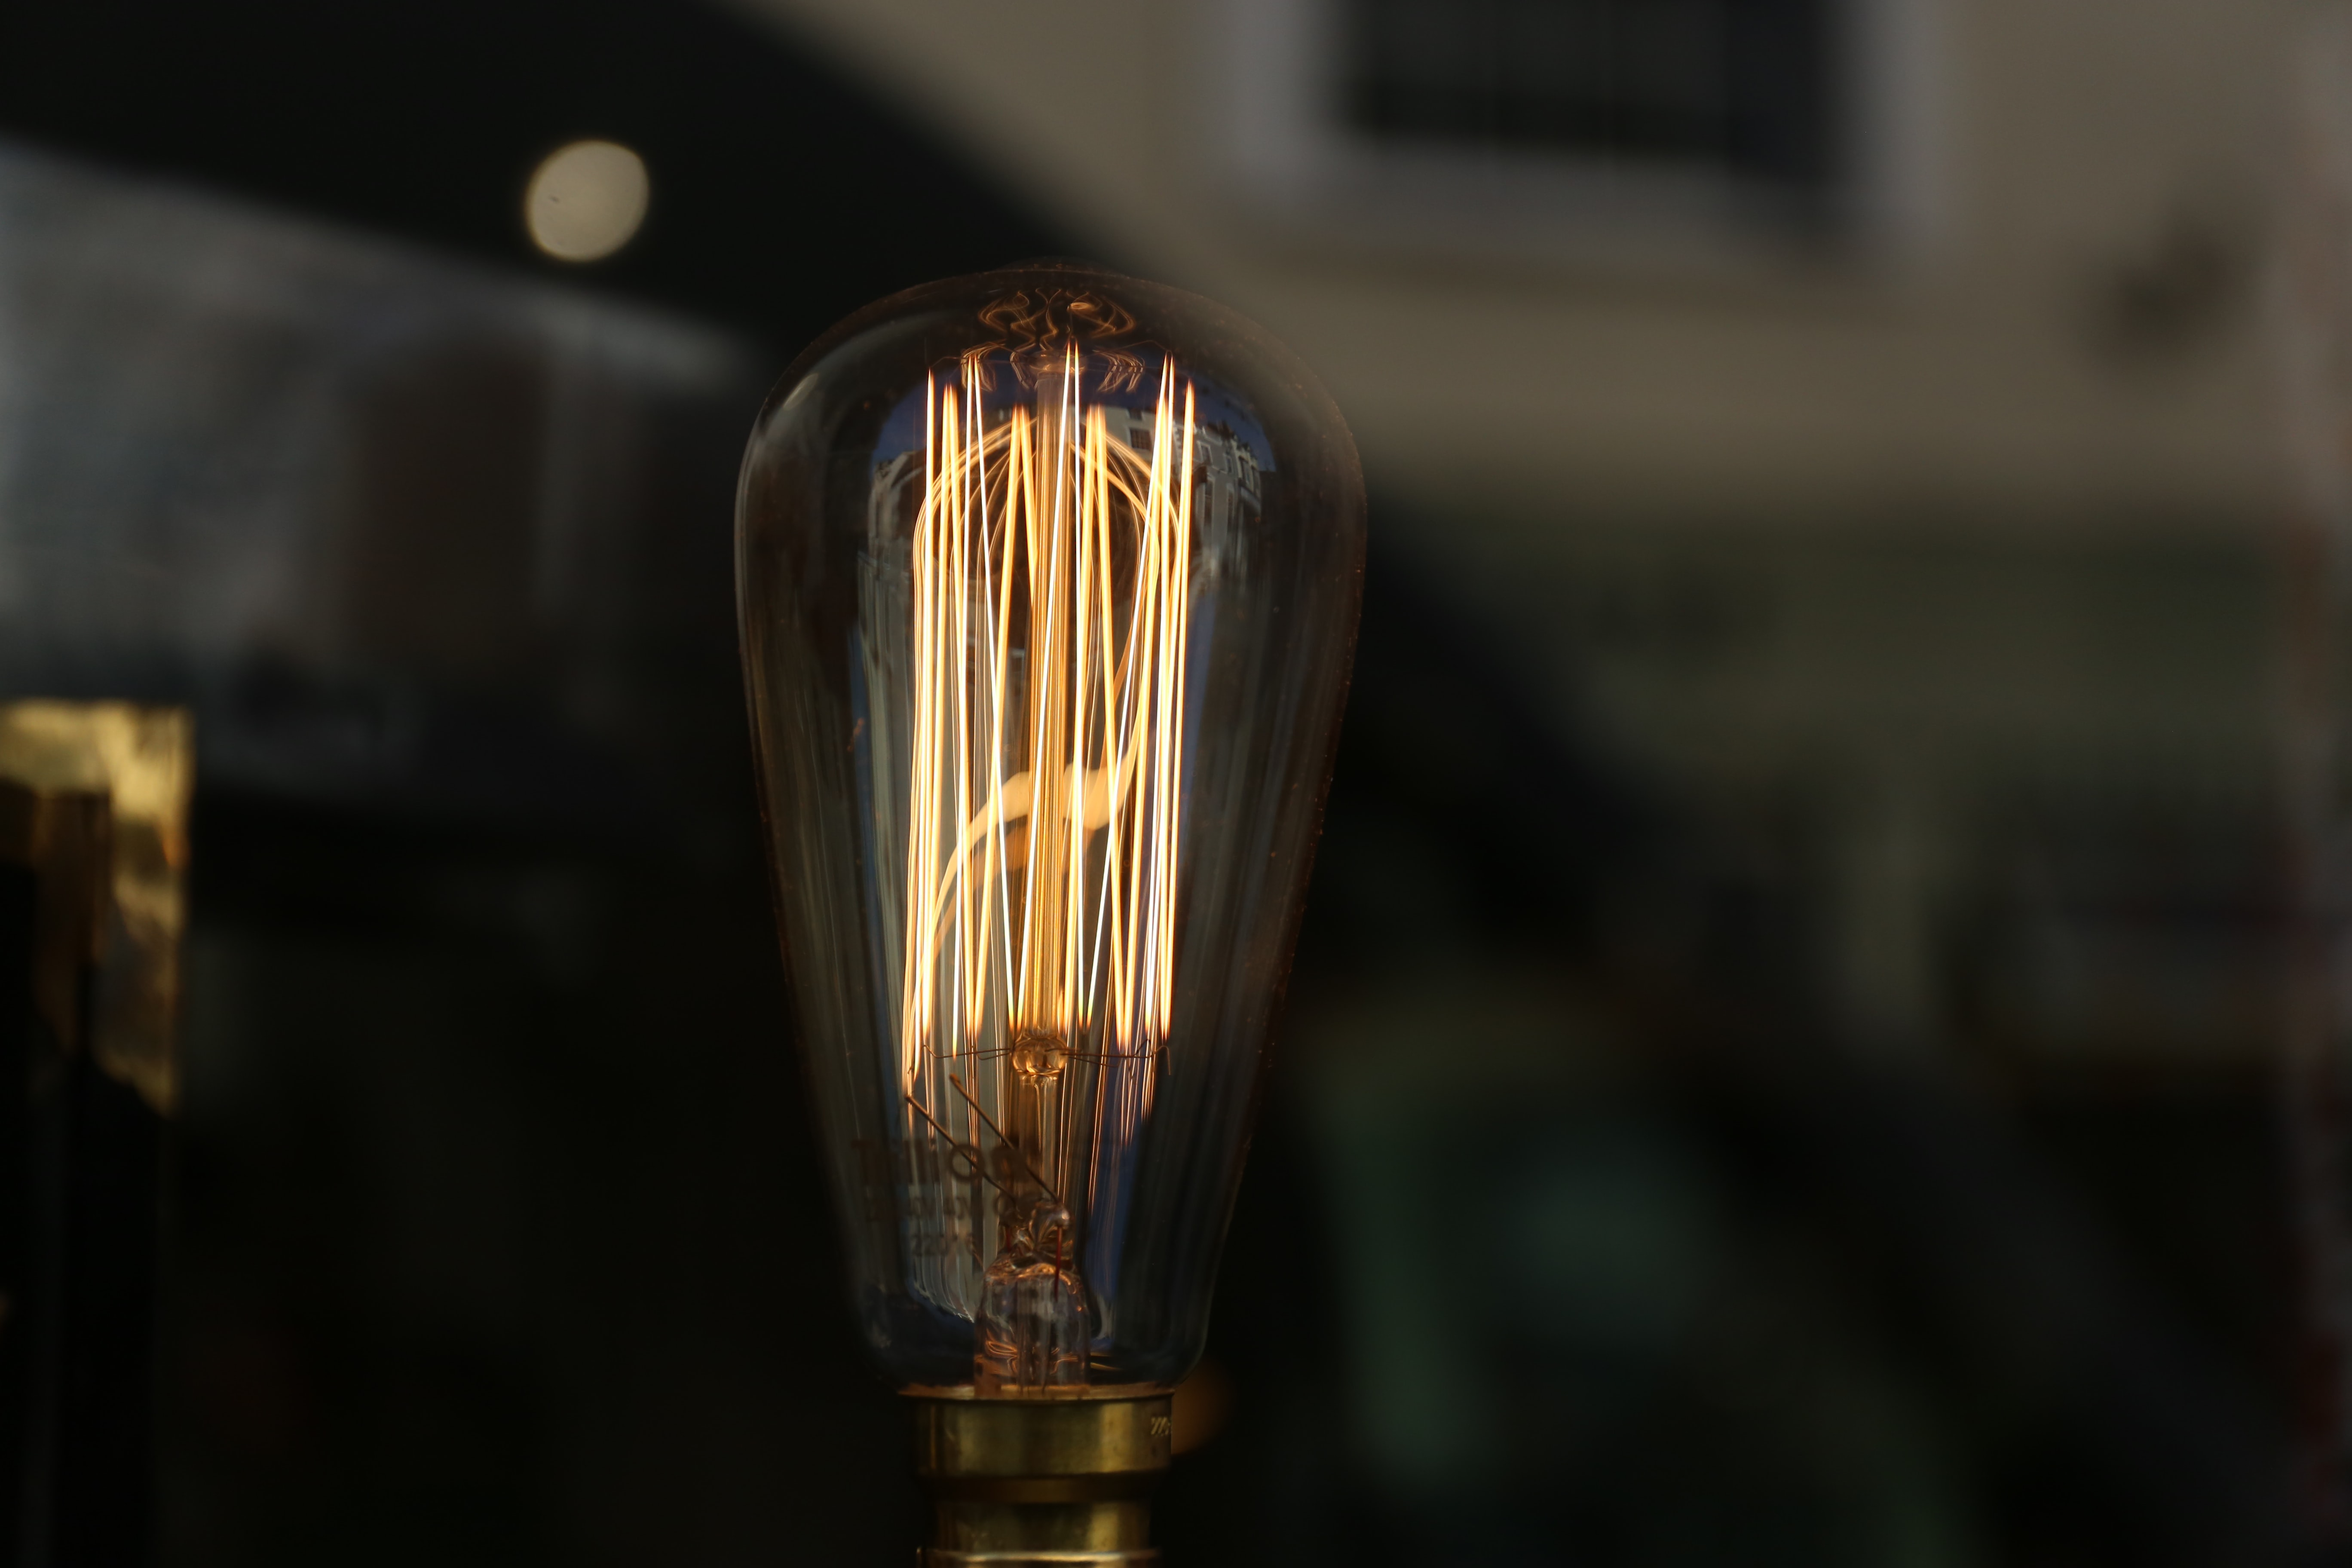 incandescent bulb turned off